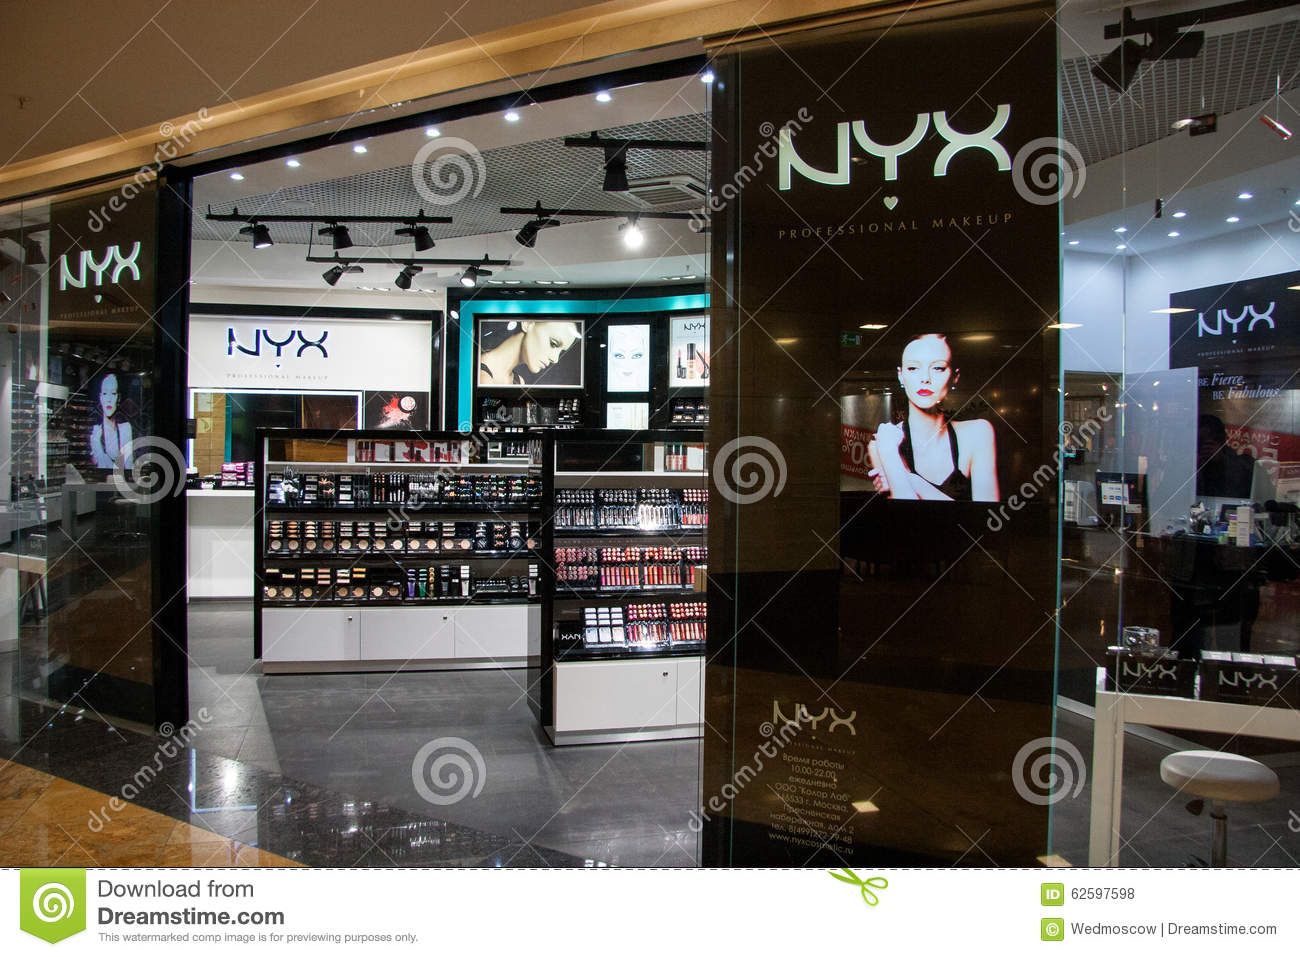 nyx store professional makeup in shopping mall moscow city editorial stock photo image 62597598. Black Bedroom Furniture Sets. Home Design Ideas